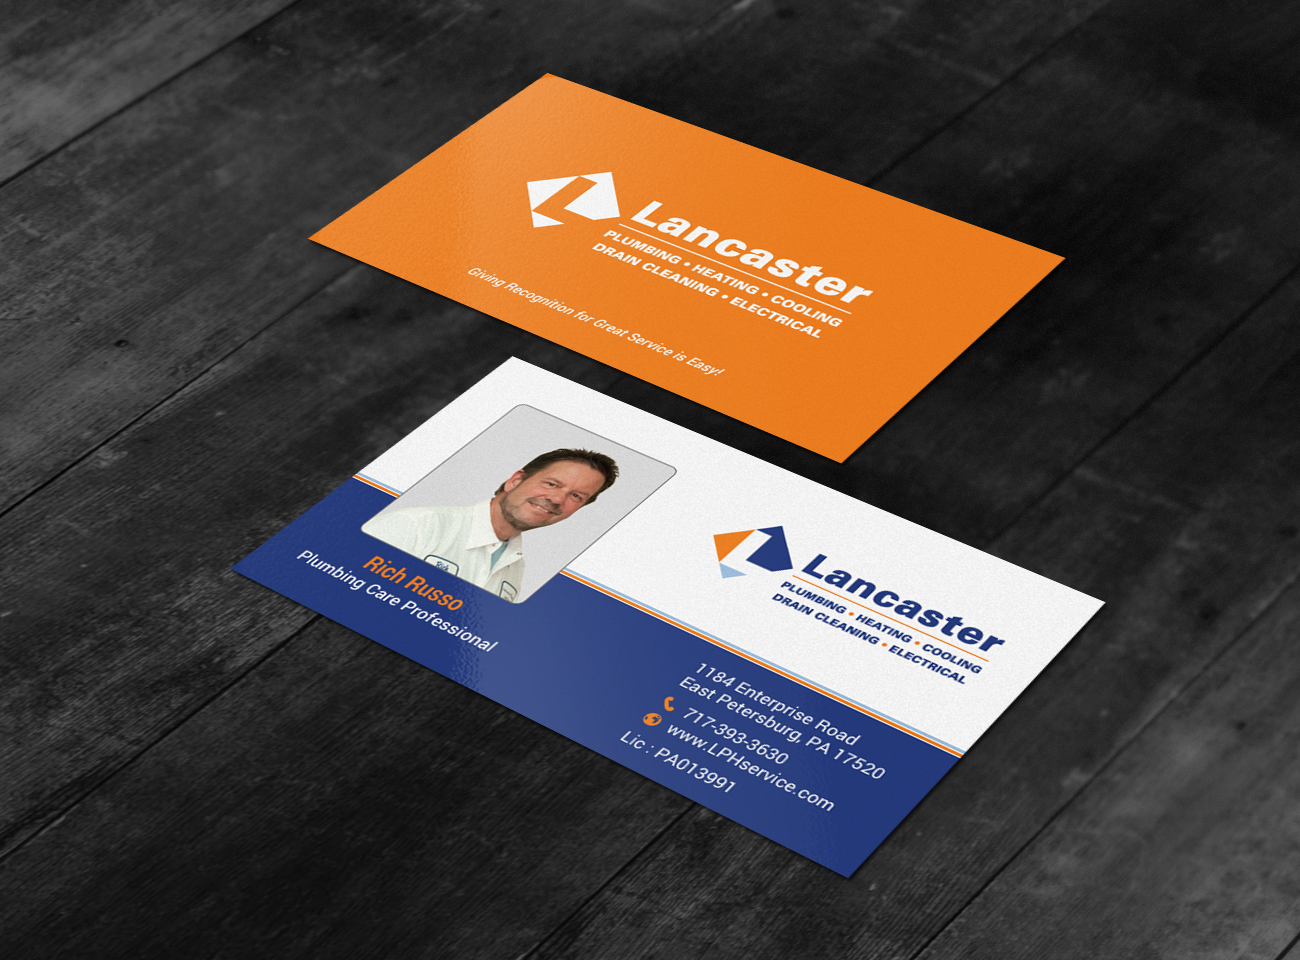 Professional Playful Residential Construction Business Card Design